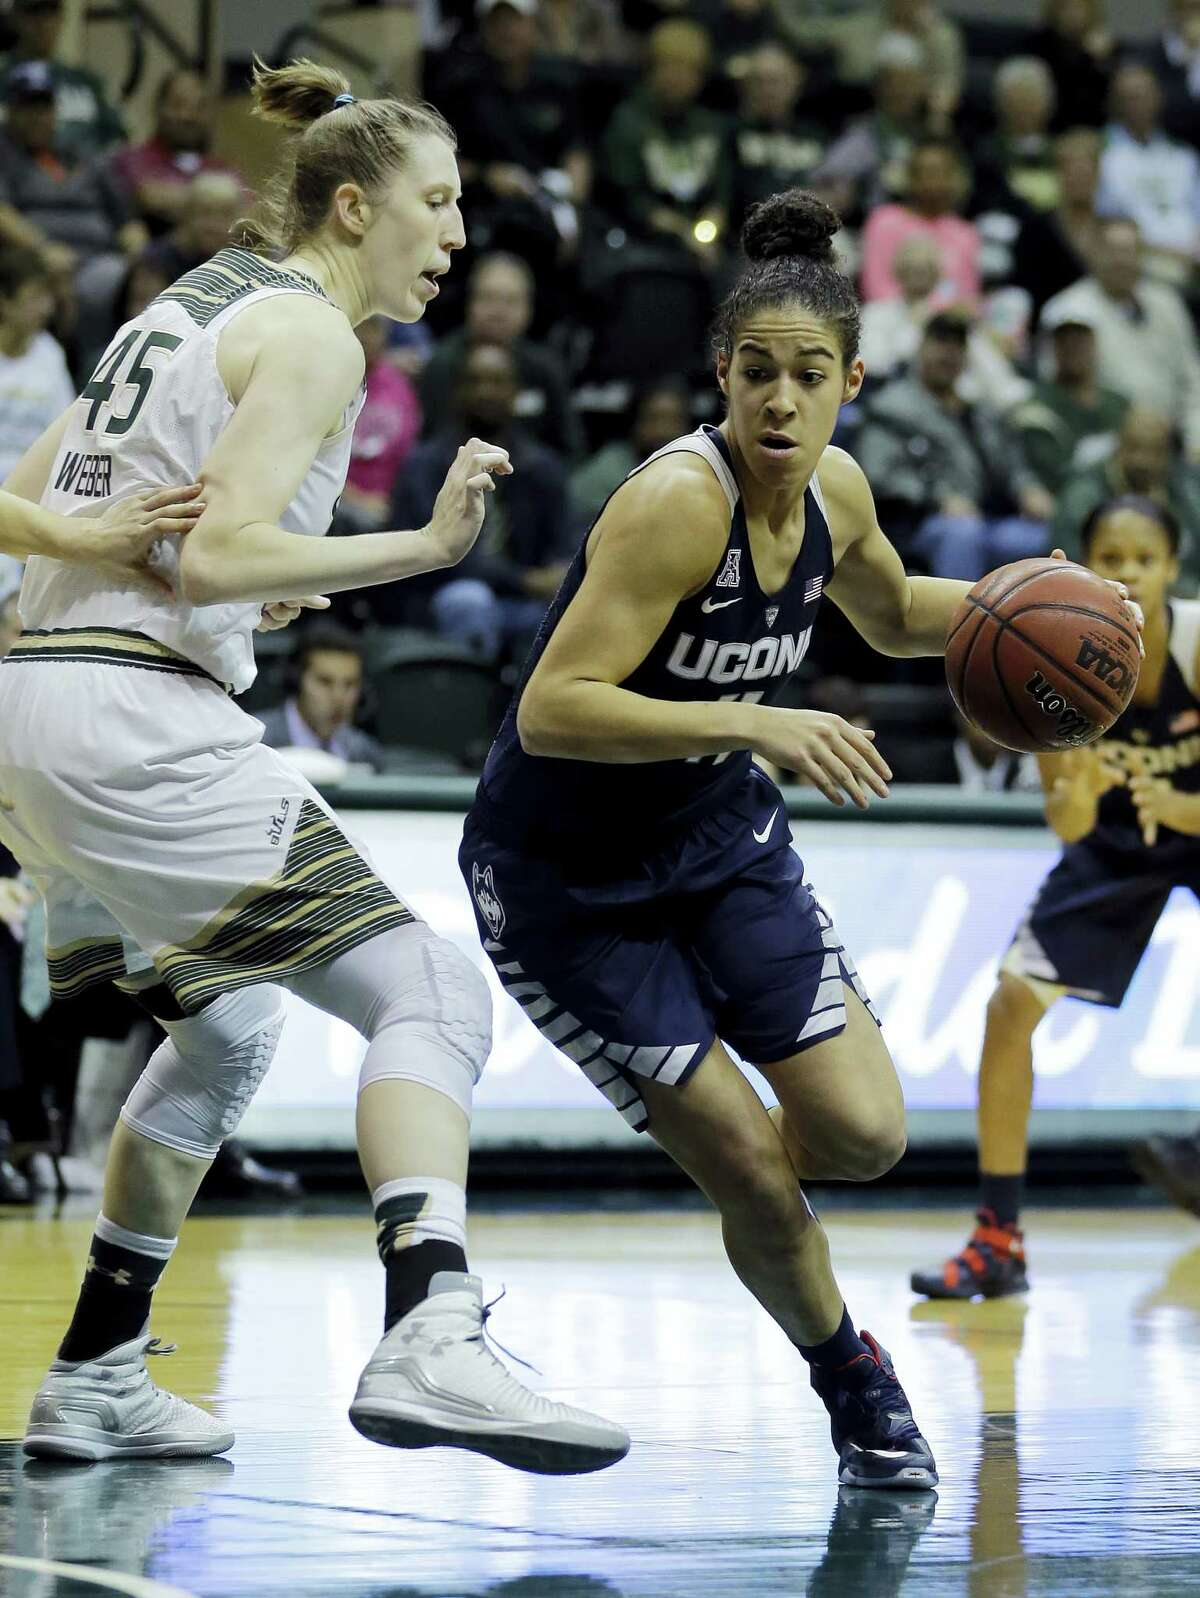 Connecticut guard Kia Nurse (11) drives around South Florida center Katelyn Weber (45) during the first half of an NCAA women's college basketball game Sunday, Jan. 10, 2016, in Tampa, Fla. (AP Photo/Chris O'Meara)